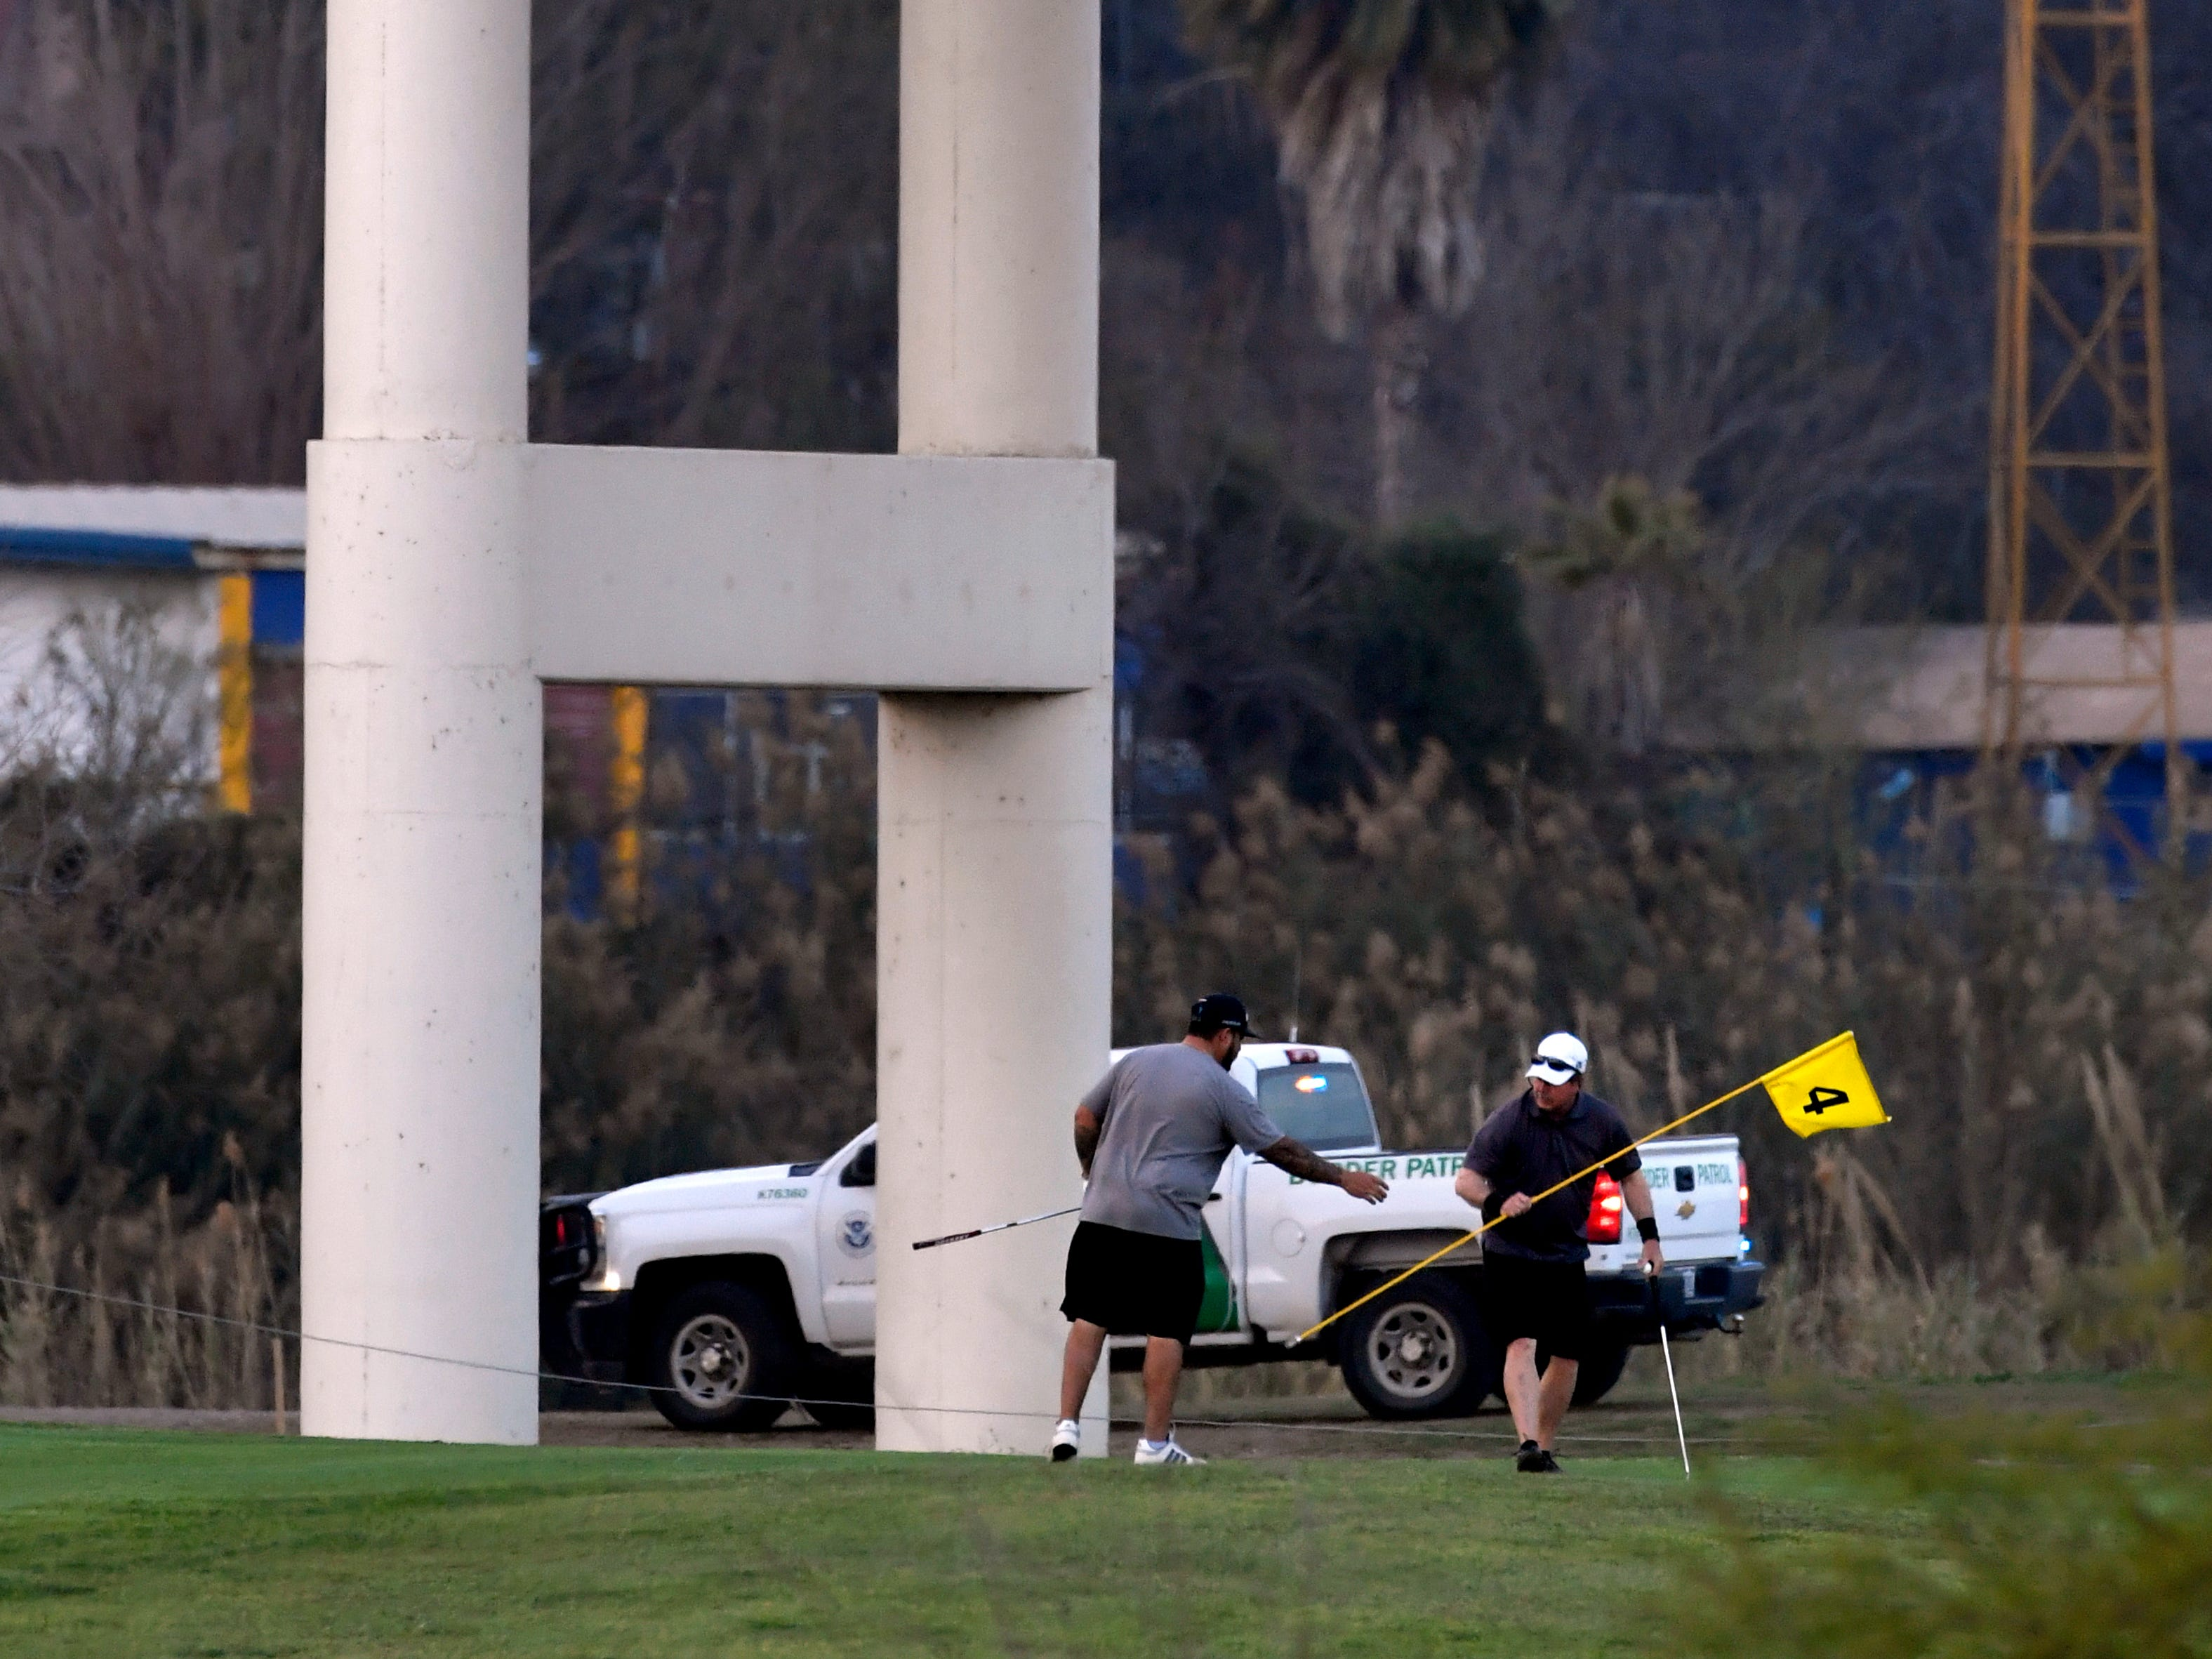 Golfers finish their round as border patrol vehicles parked above and below the Eagle Pass International Bridge Wednesday Feb. 6, 2019 guard against unauthorized entry. A caravan of Central American migrants has arrived in Piedras Negras and border law enforcement officials have increased their presence in response.